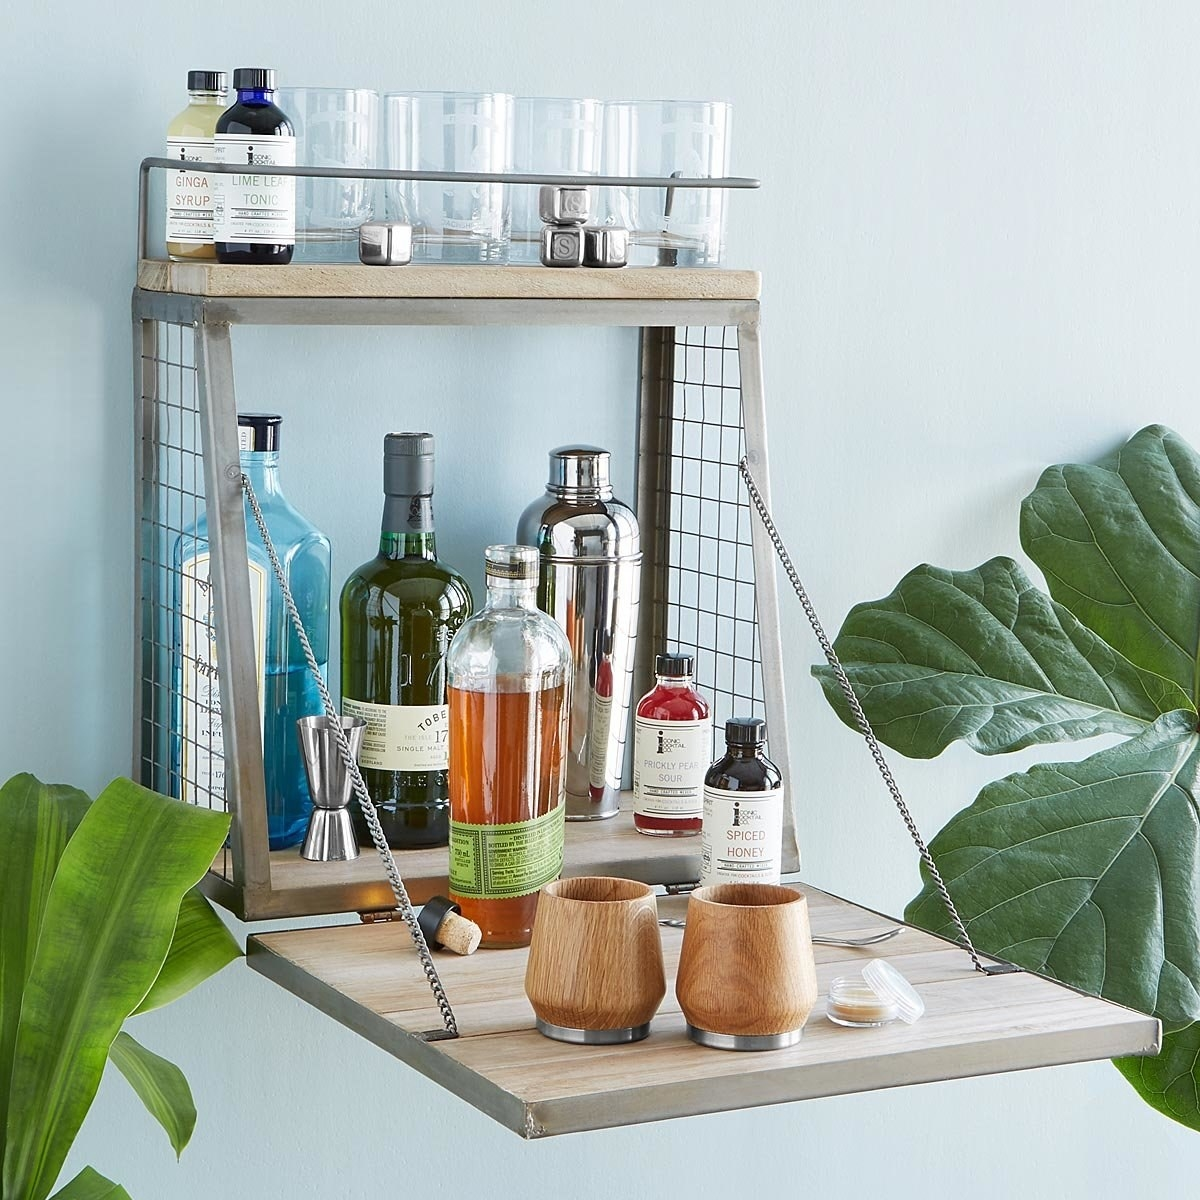 The wall-mounted fold-down shelf loaded with alcohol bottles and glasses